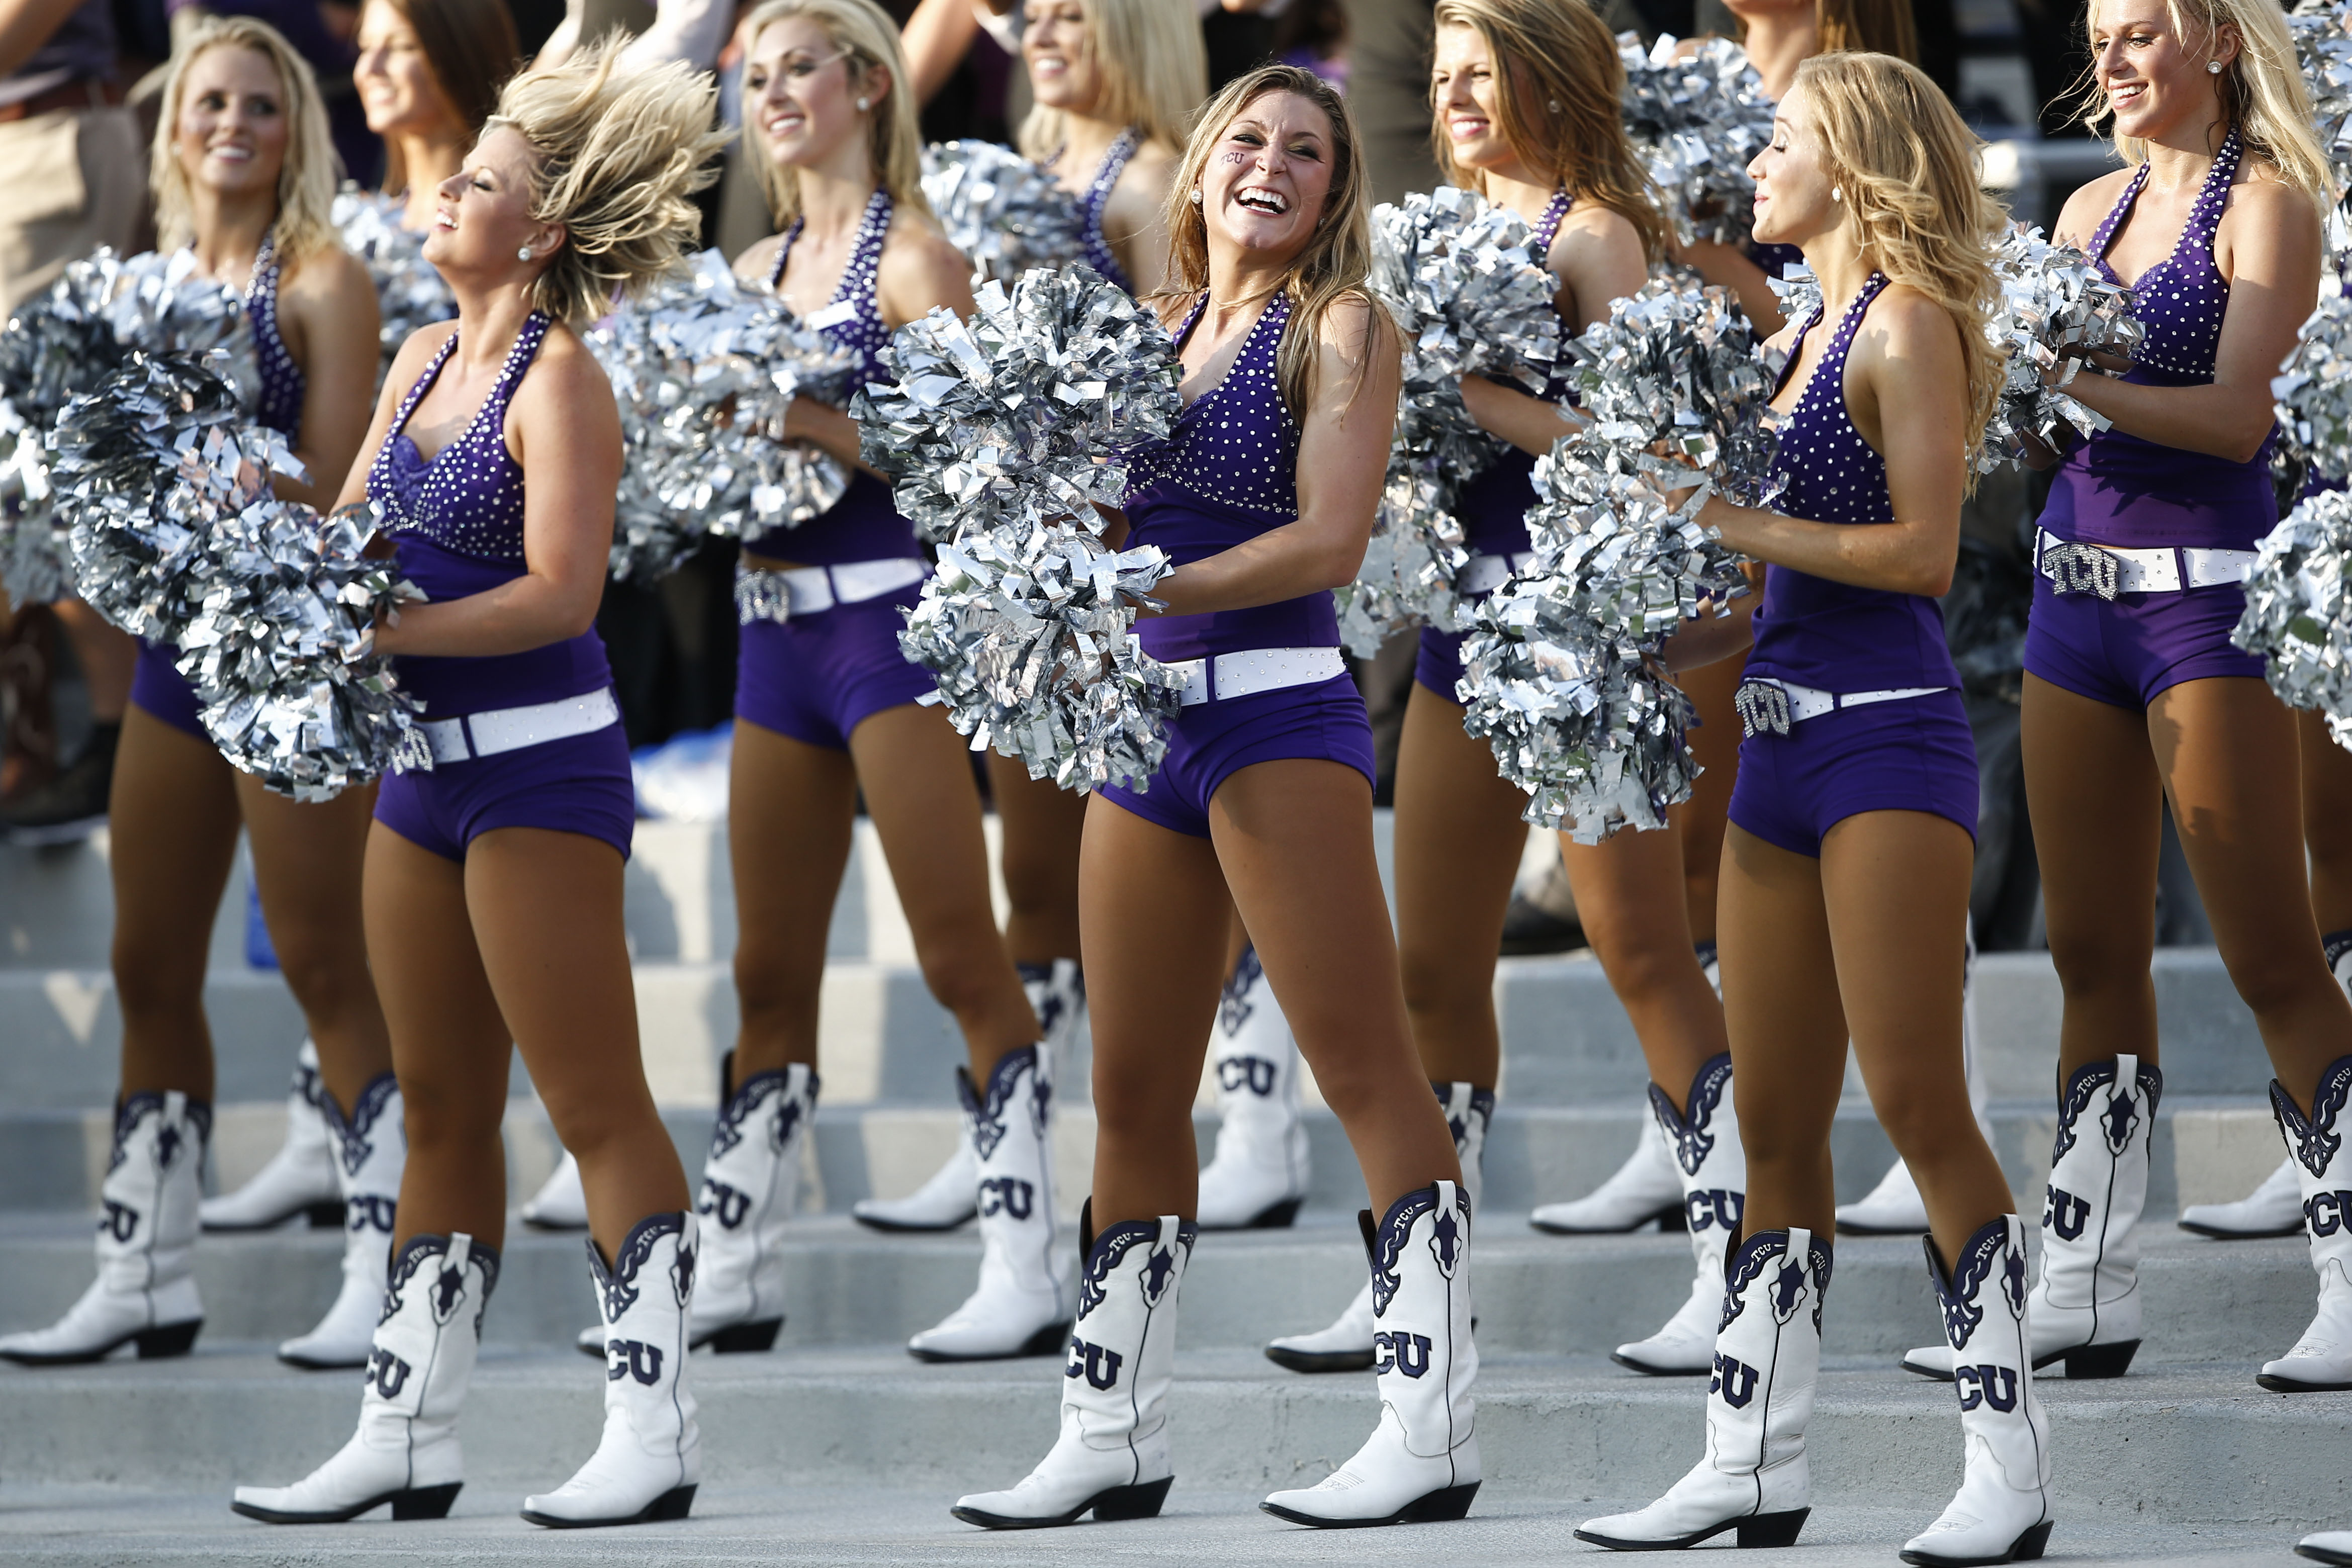 TCU showgirls perform in the first half of an NCAA college football game against Samford in Fort Worth, Texas, Saturday, Aug. 30, 2014. (AP Photo/Jim Cowsert)